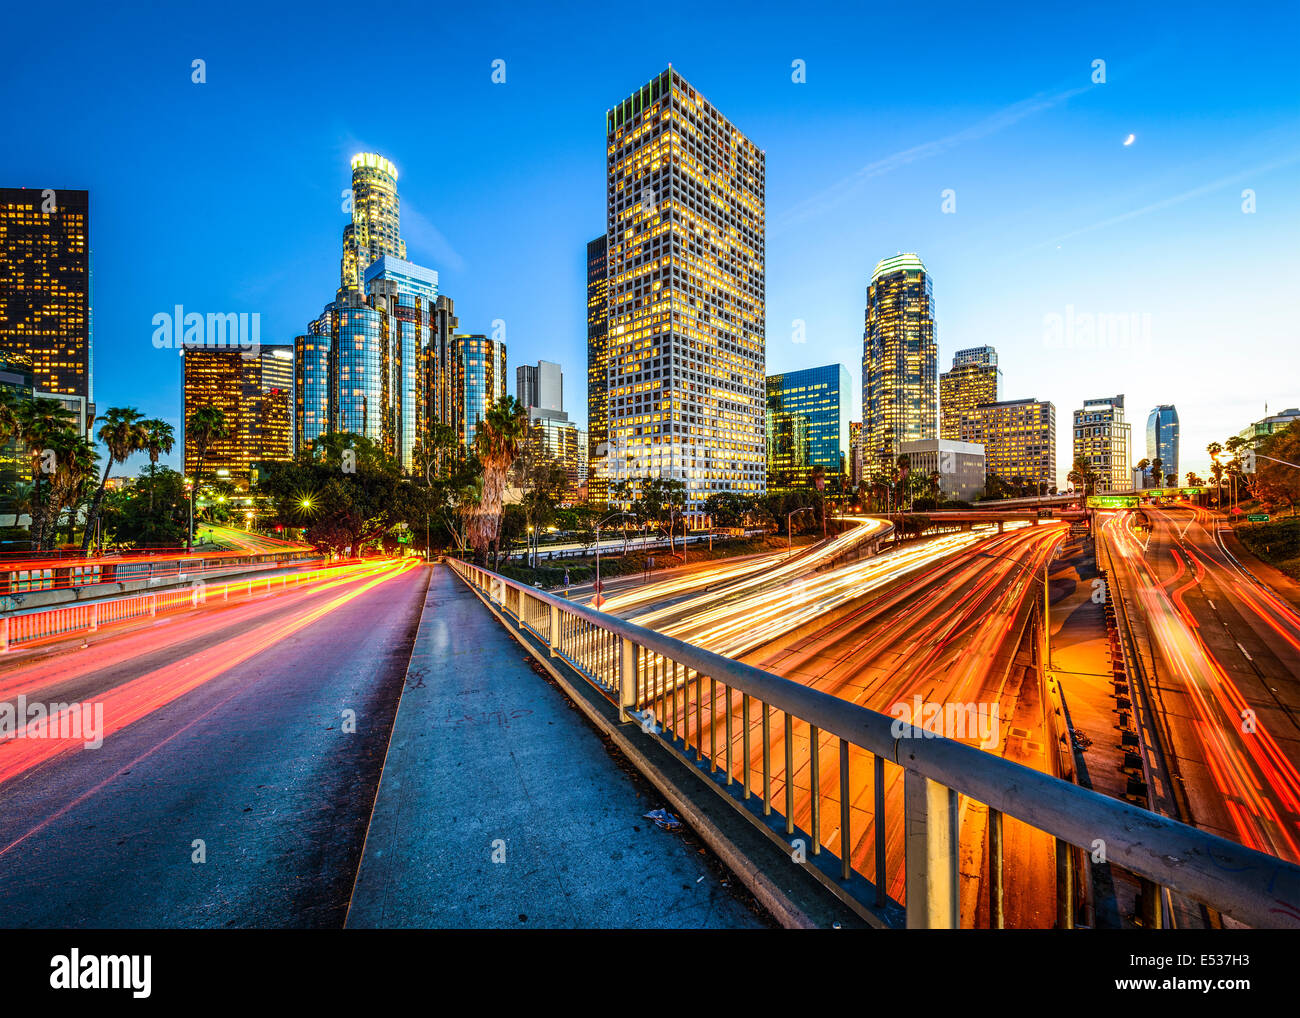 Los Angeles, Californie, USA sur le centre-ville de nuit. Photo Stock